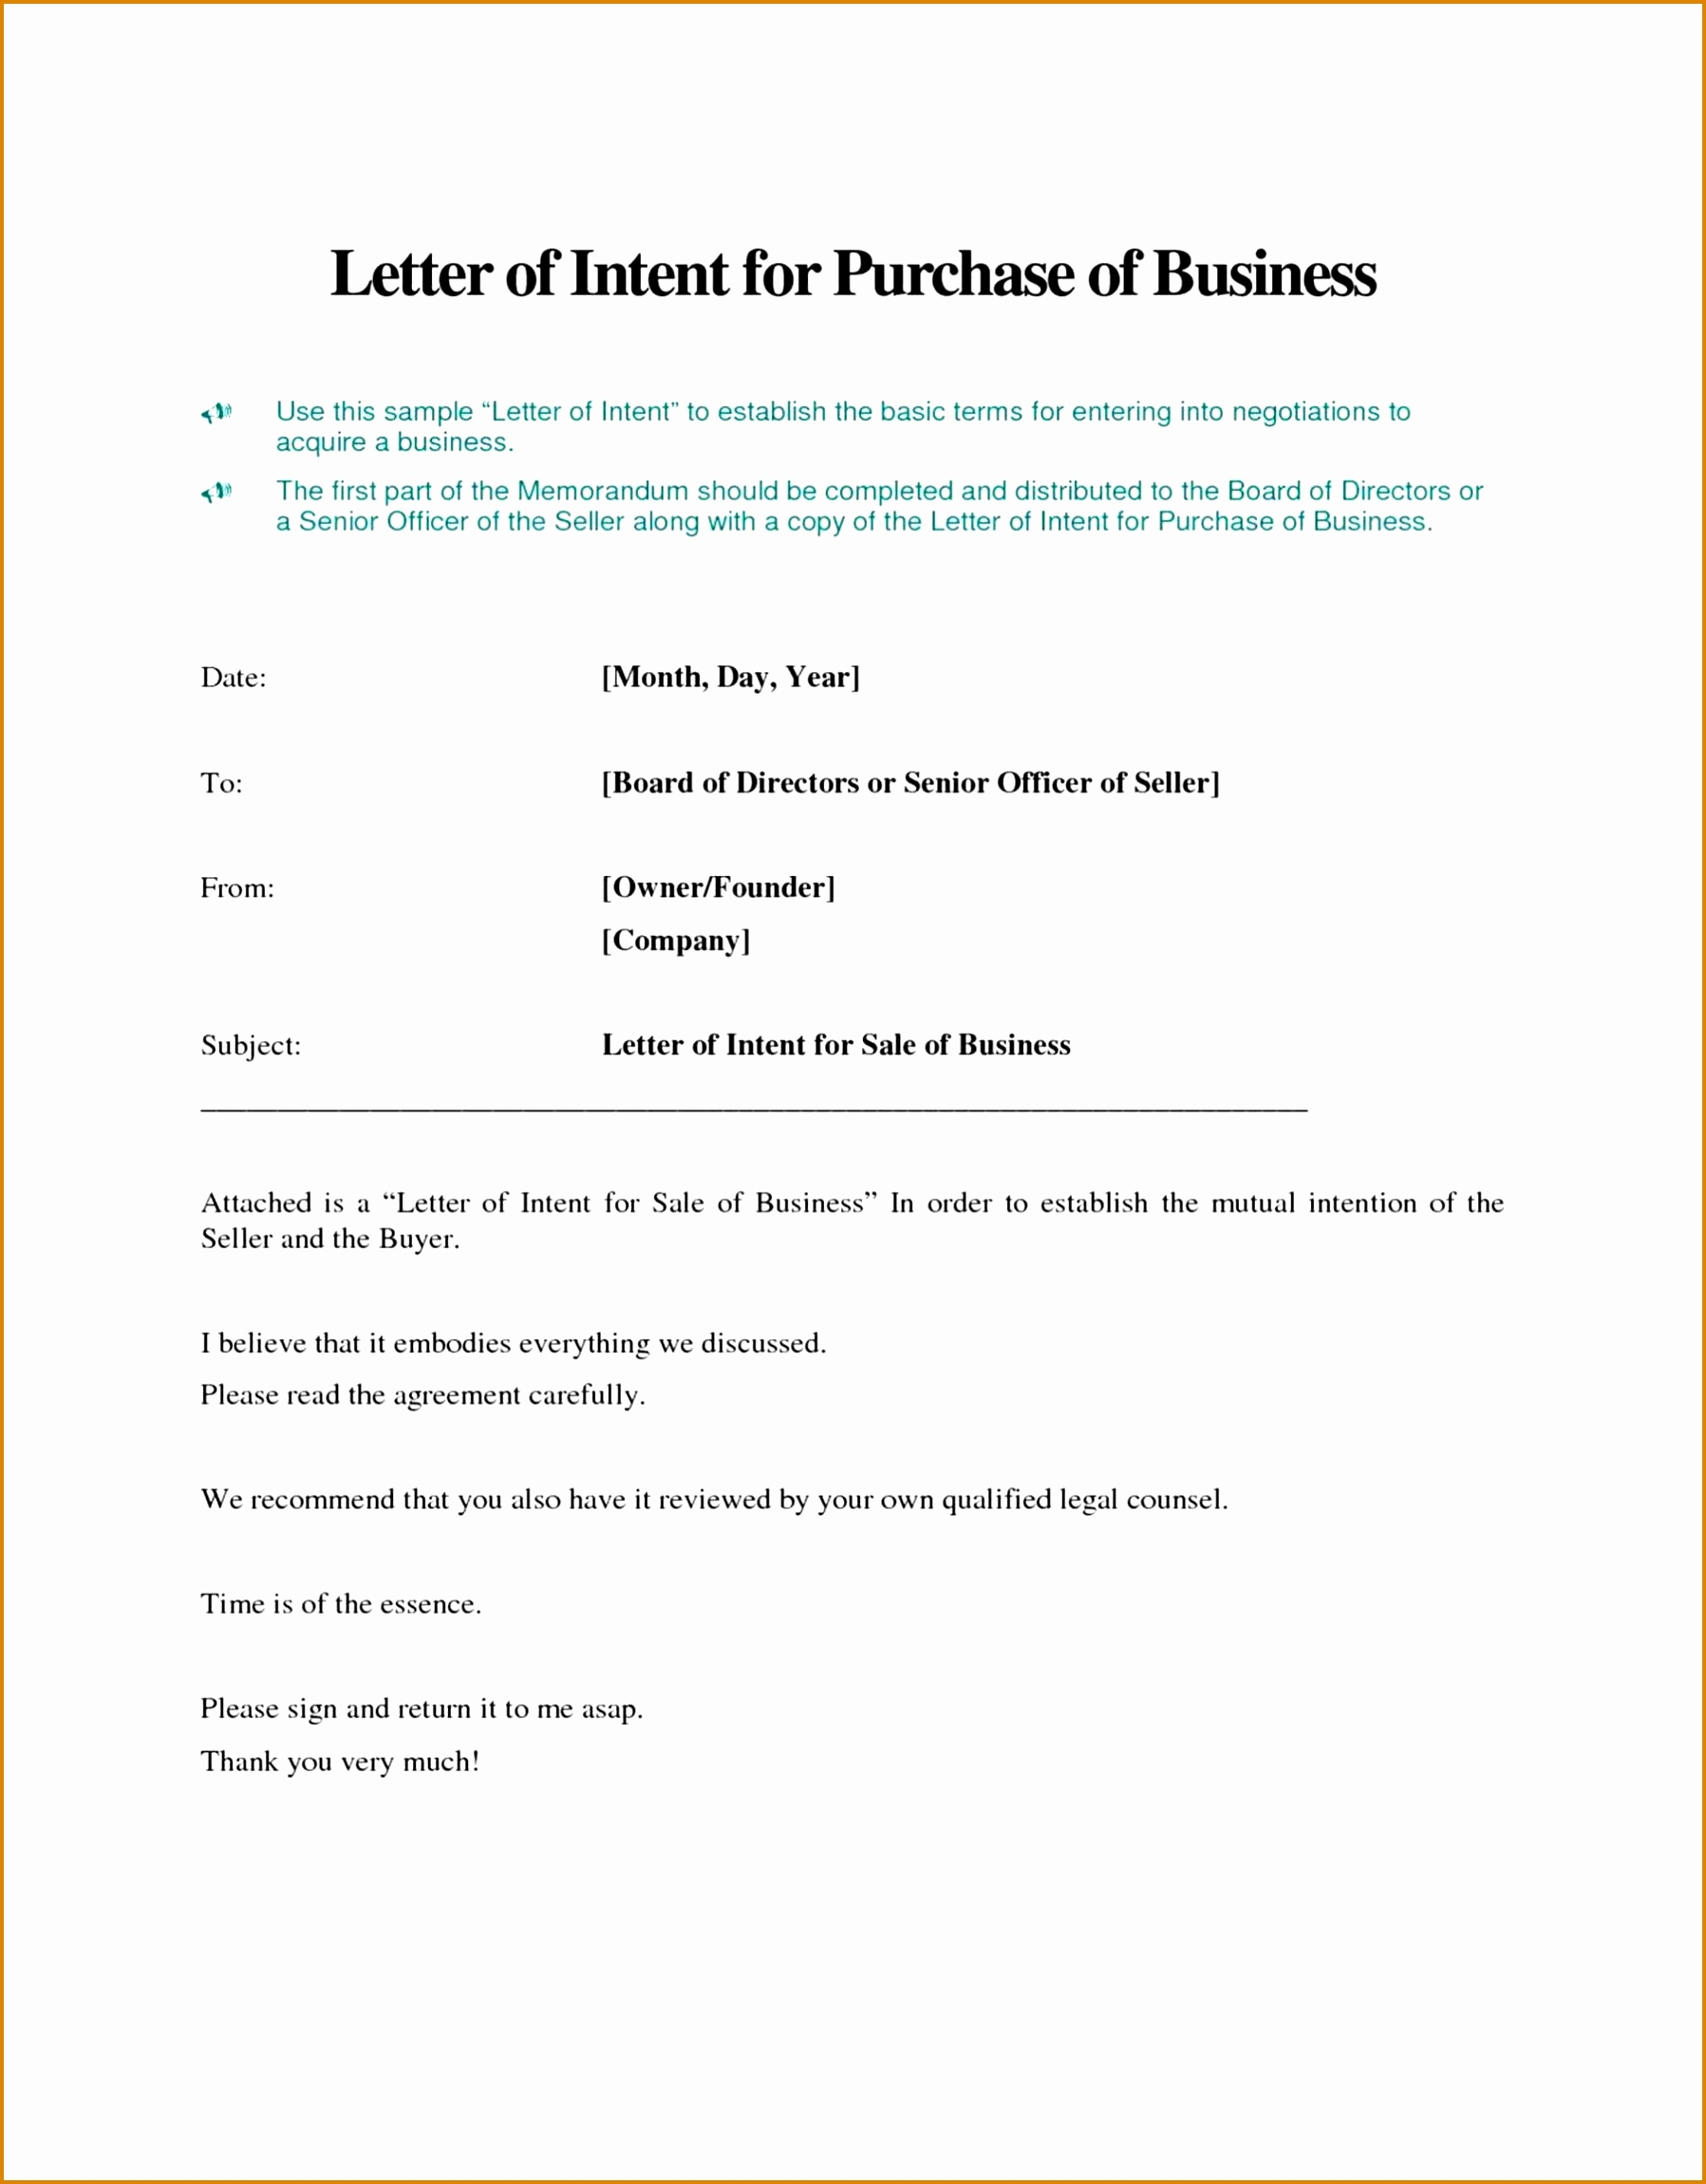 Letter Of Intent to Sell Property Template - Letter Intent to Sell Ideas How Write Business House